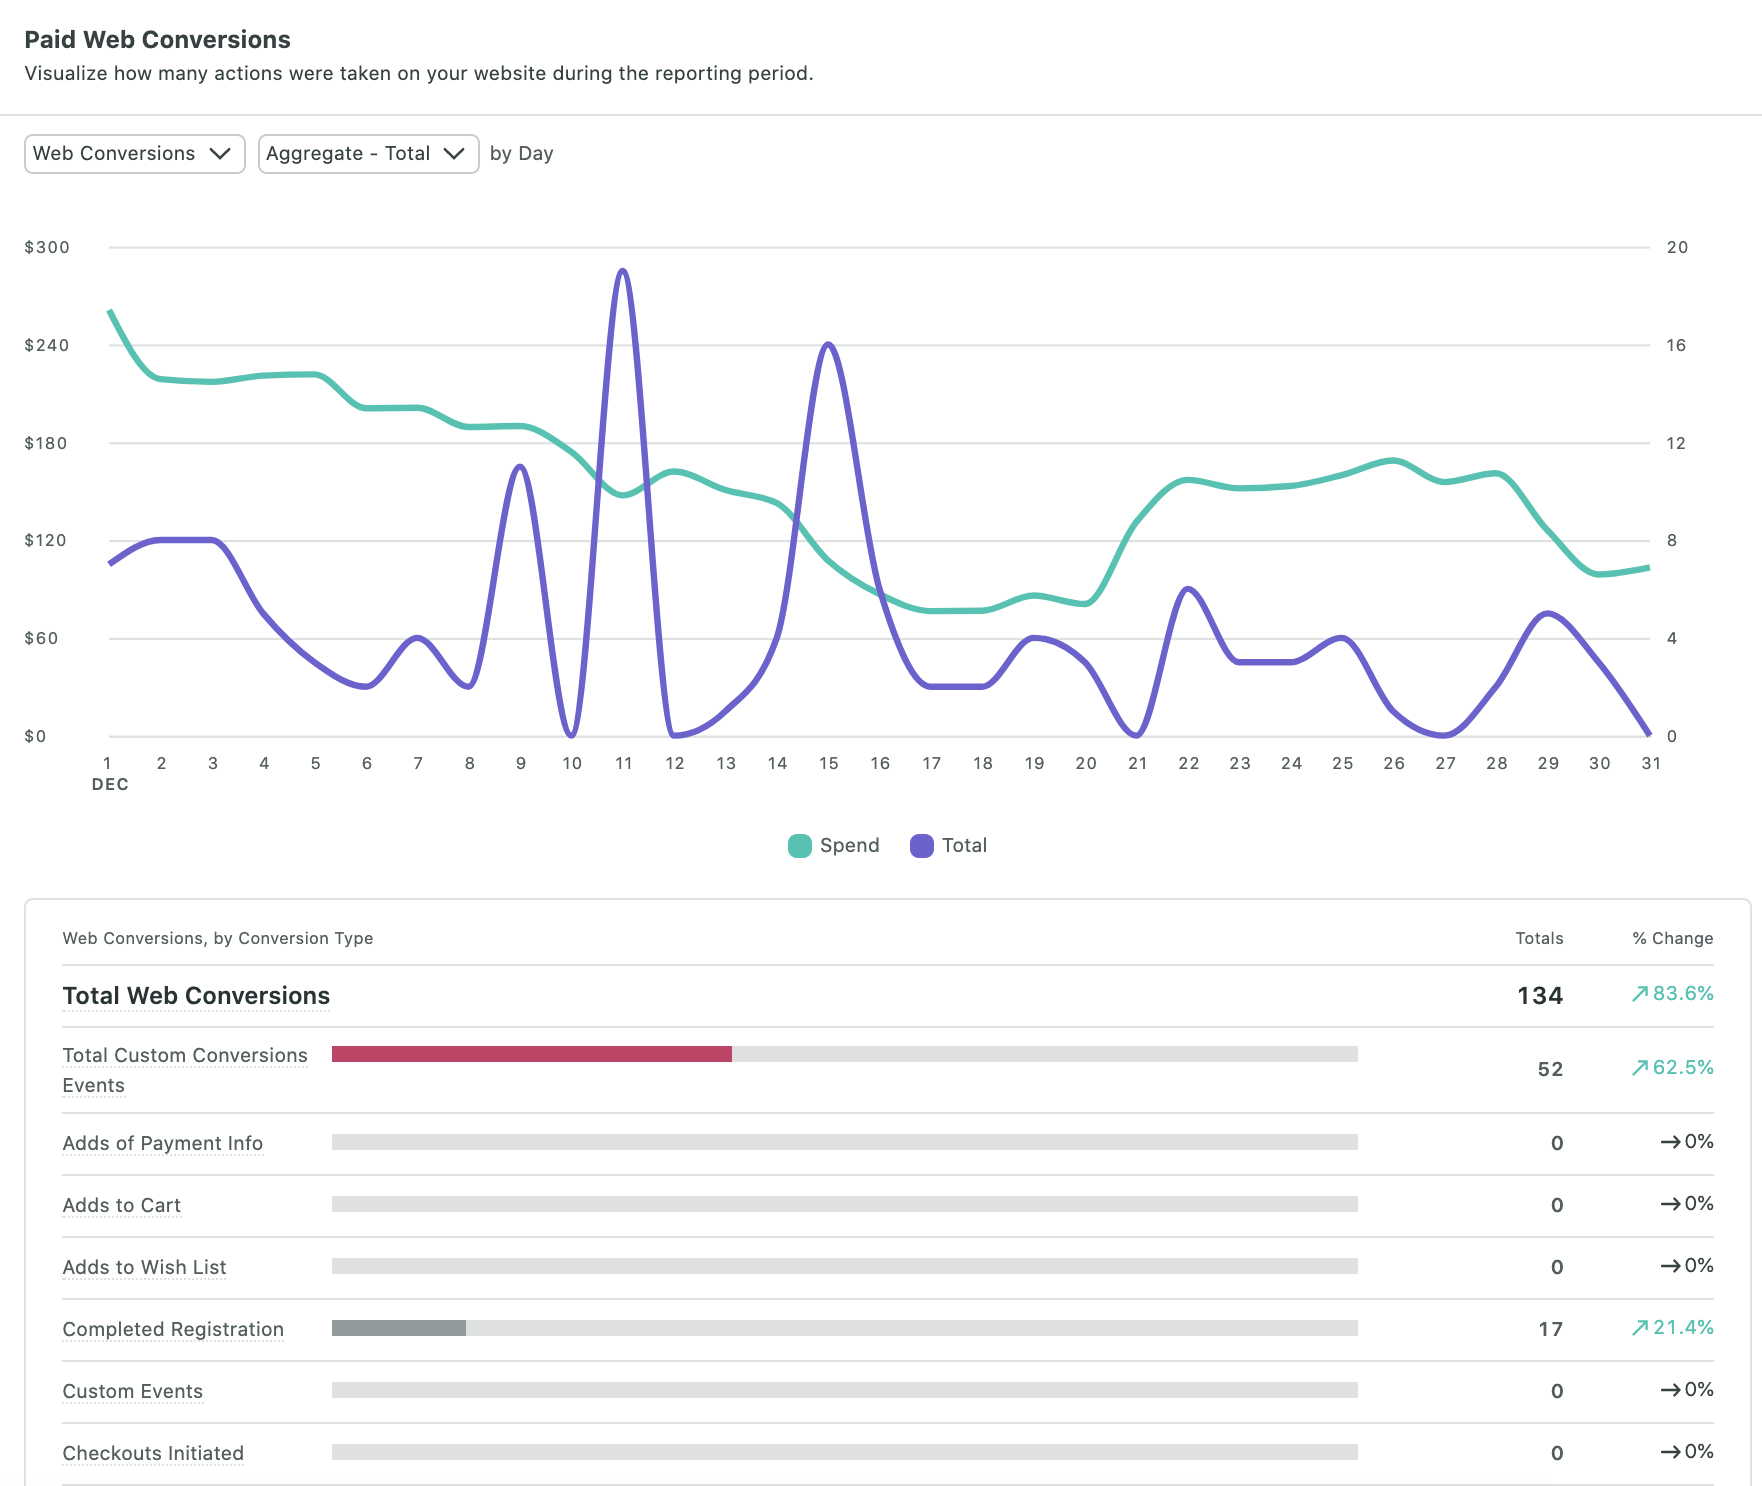 Screenshot of the Sprout Social Paid Performance Report, showing daily paid web conversions by total and spend. A bar chart also shows the type of web conversion actions and total numbers of each action.